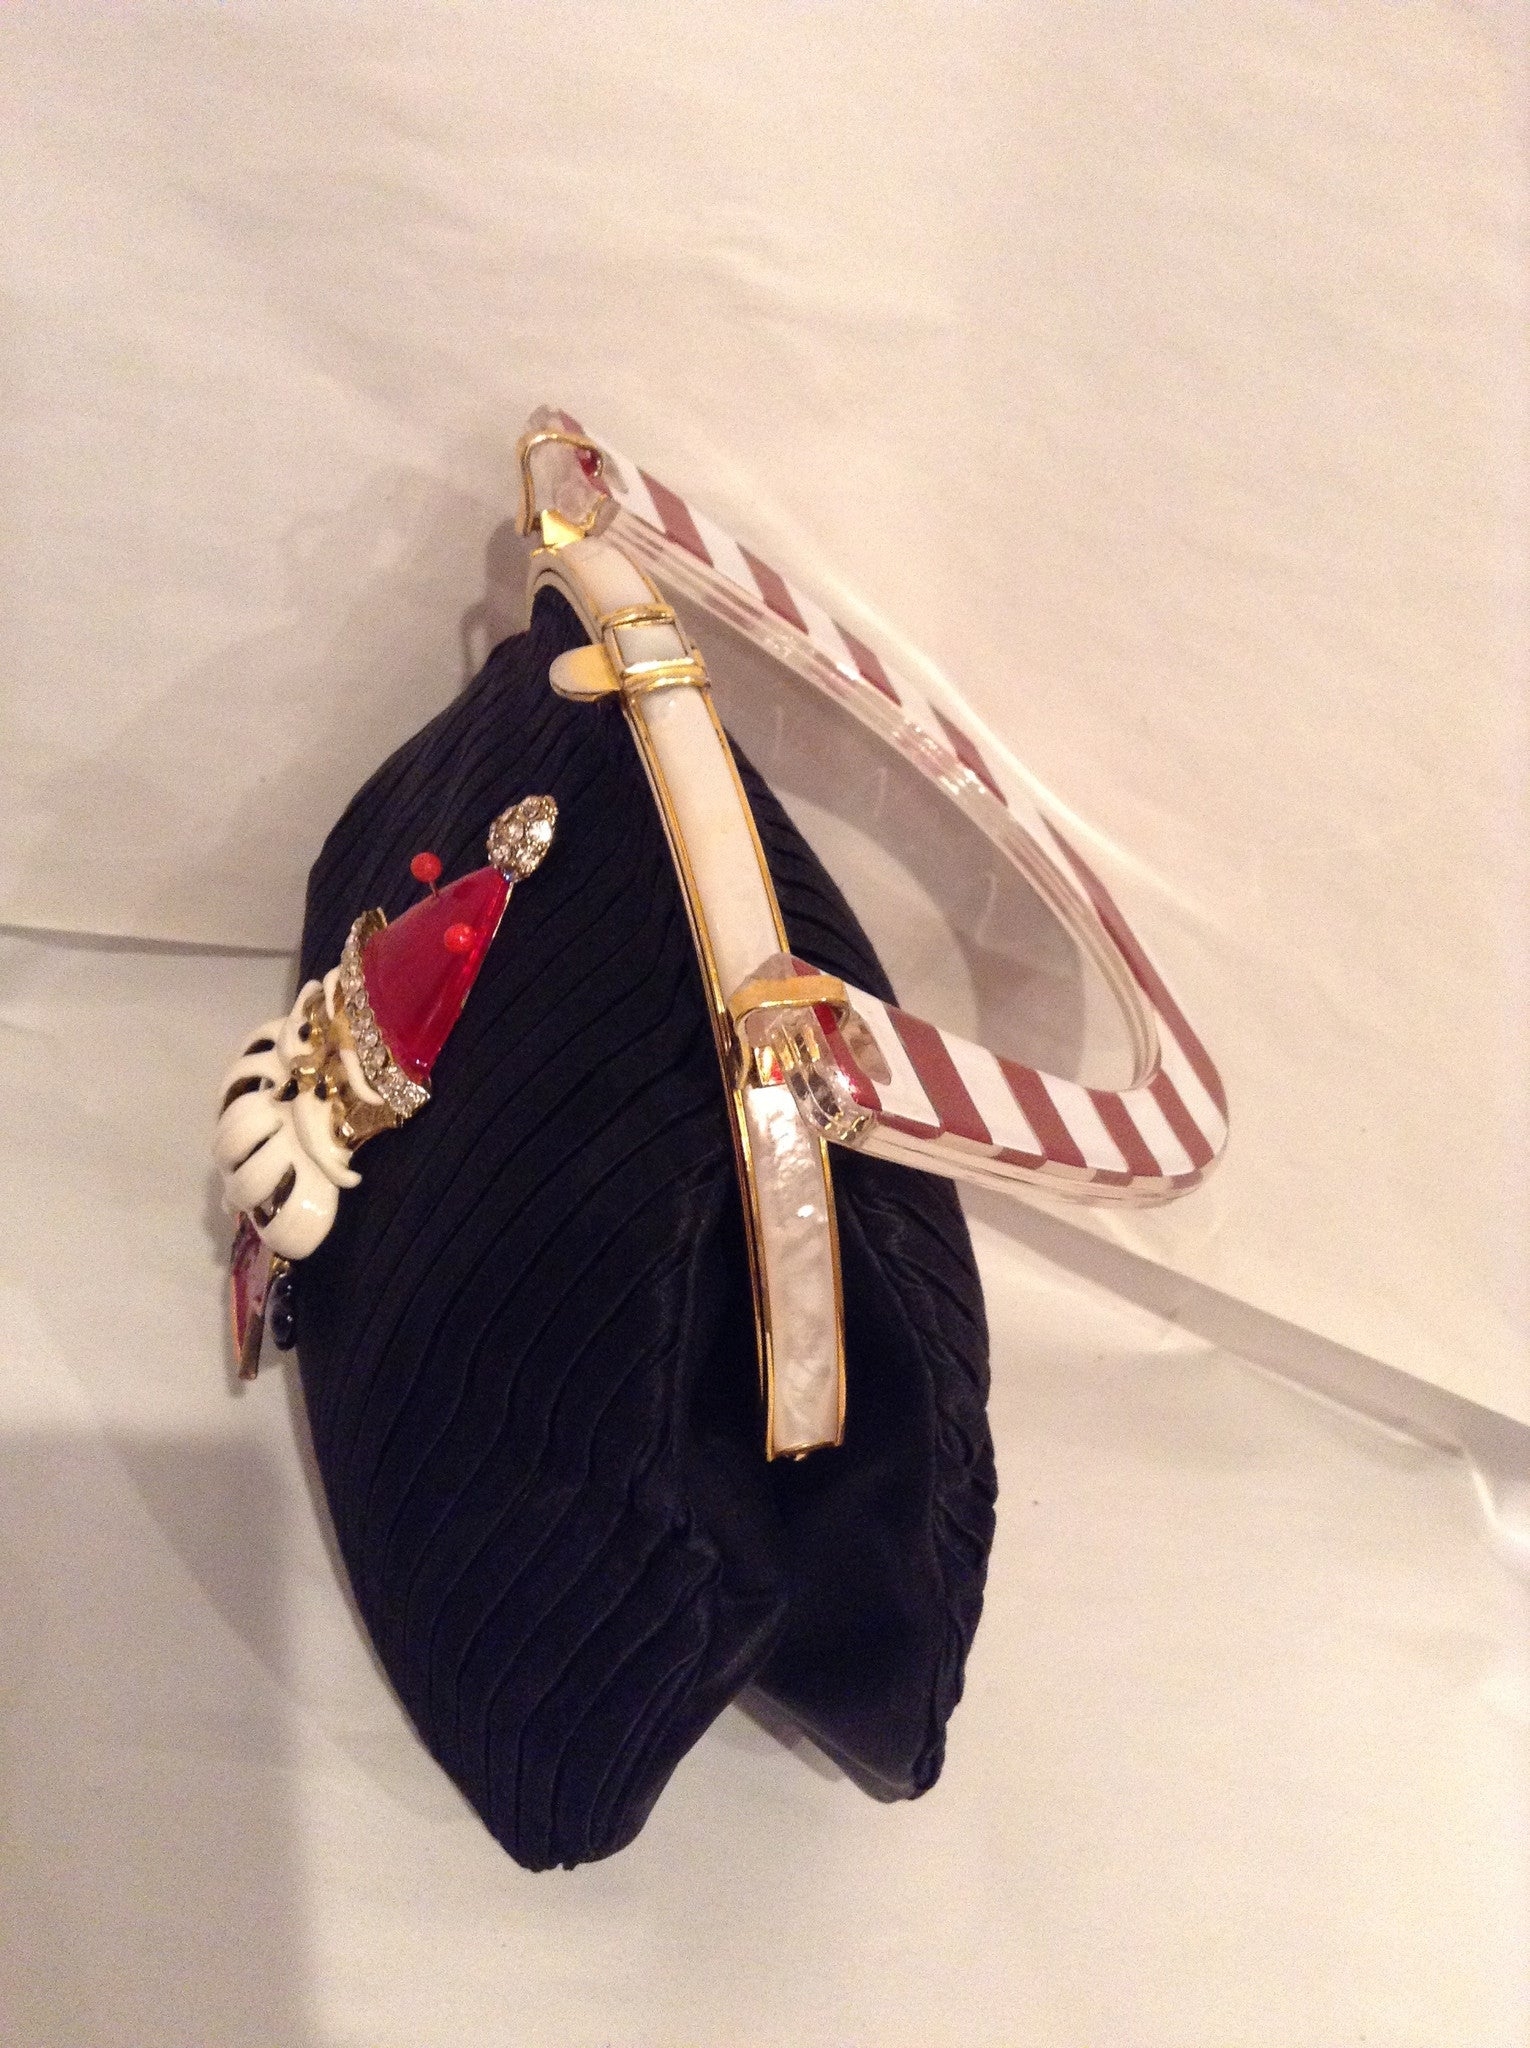 Koret Vintage Black Pleated Satin X-MAS Purse, Moving Vintage Enamel Santa, Lucite Candy Cane Handle